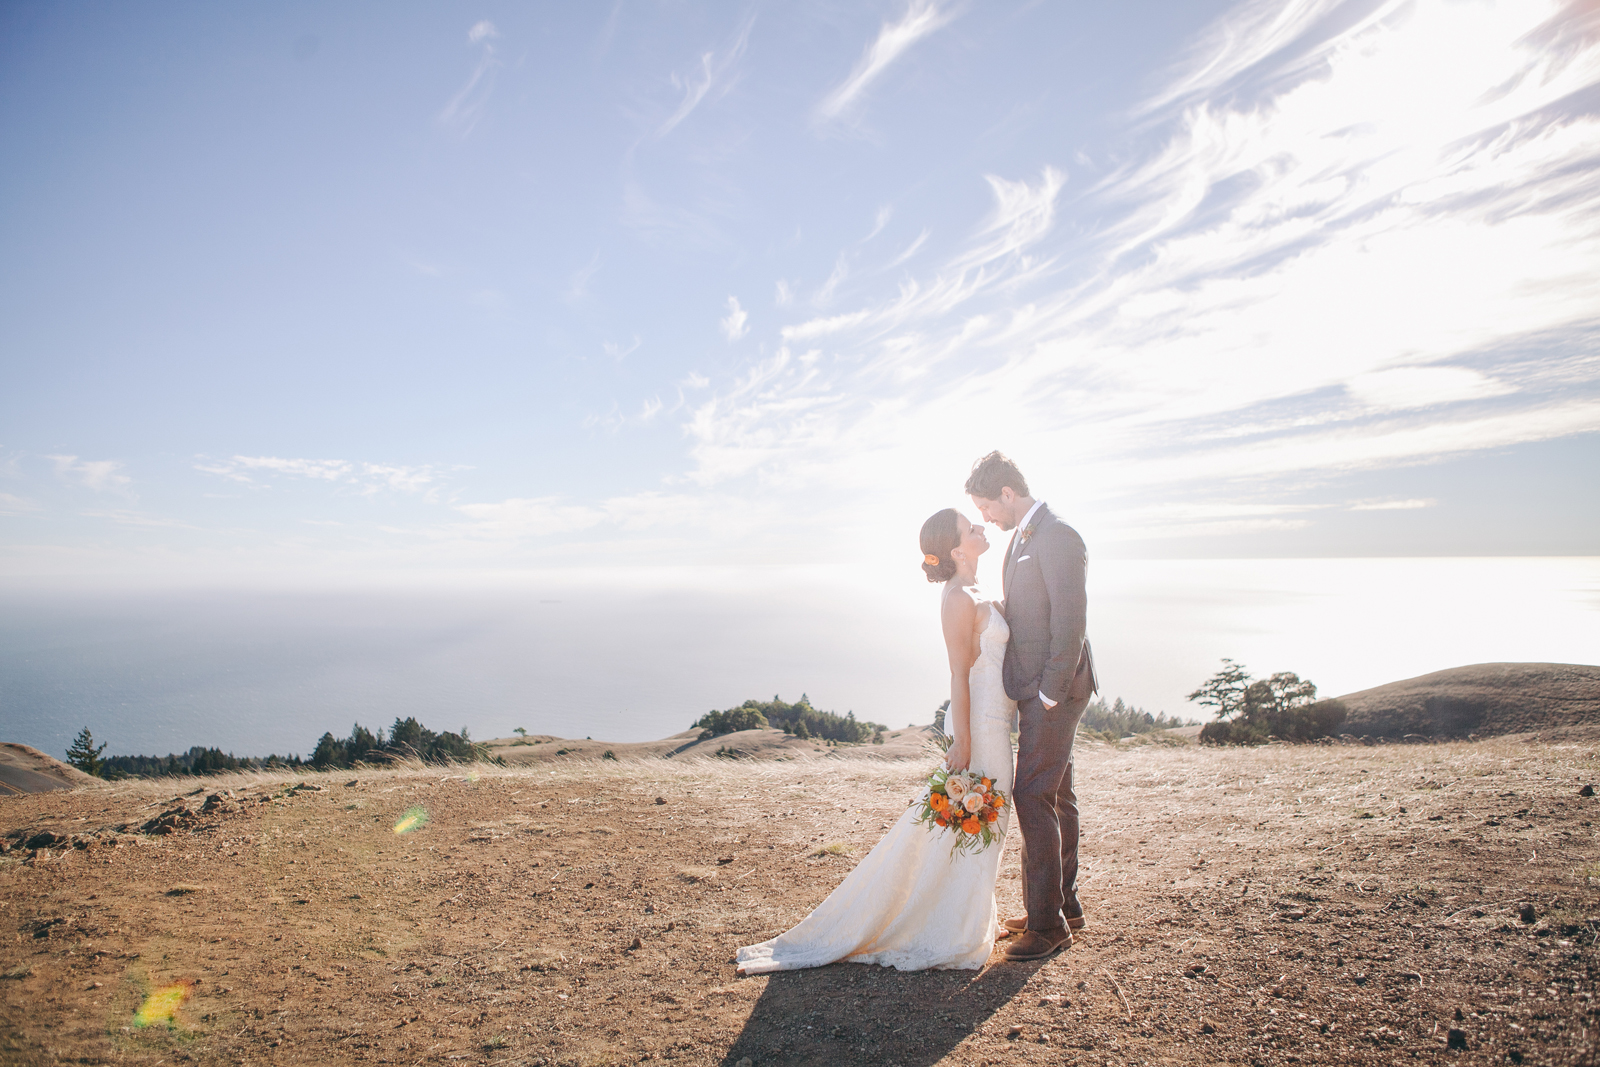 mt_tam_wedding_photography_marin_zac_katie_ebony_siovhan_bokeh_photography_46.jpg